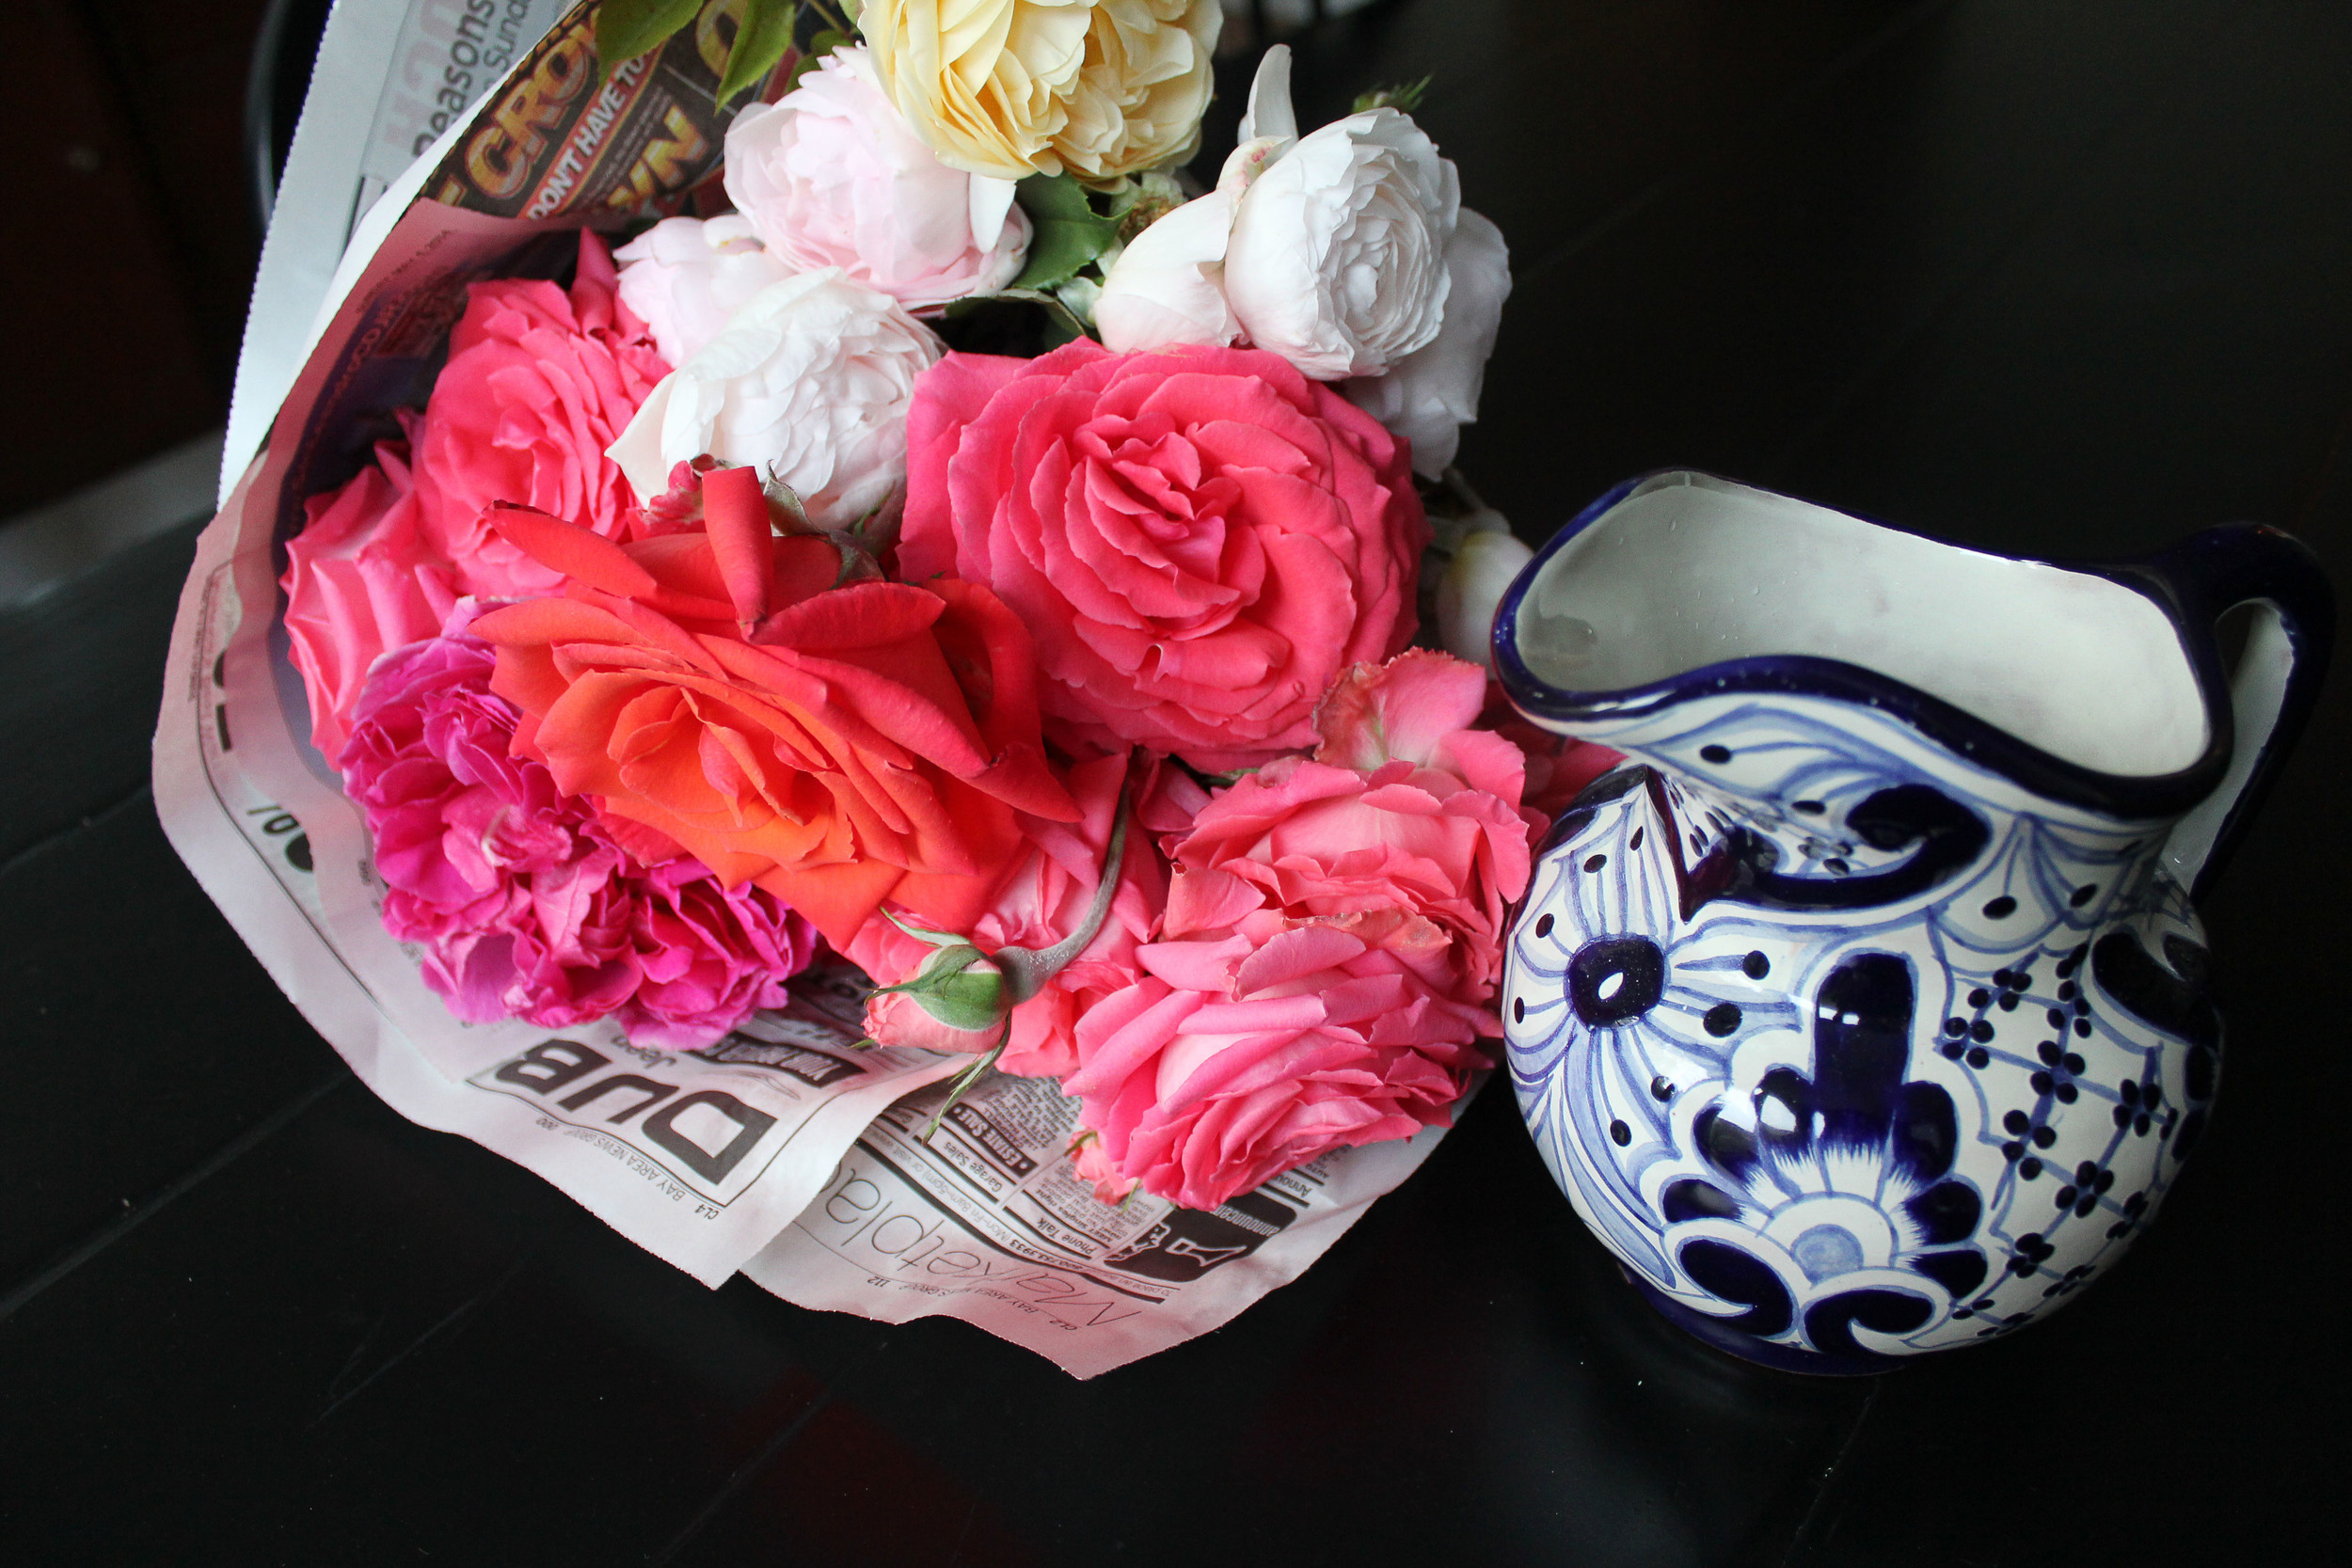 Decor for #cincodemayo - Pink and coral flowers in talavera pitcher - www.fancycasual.com